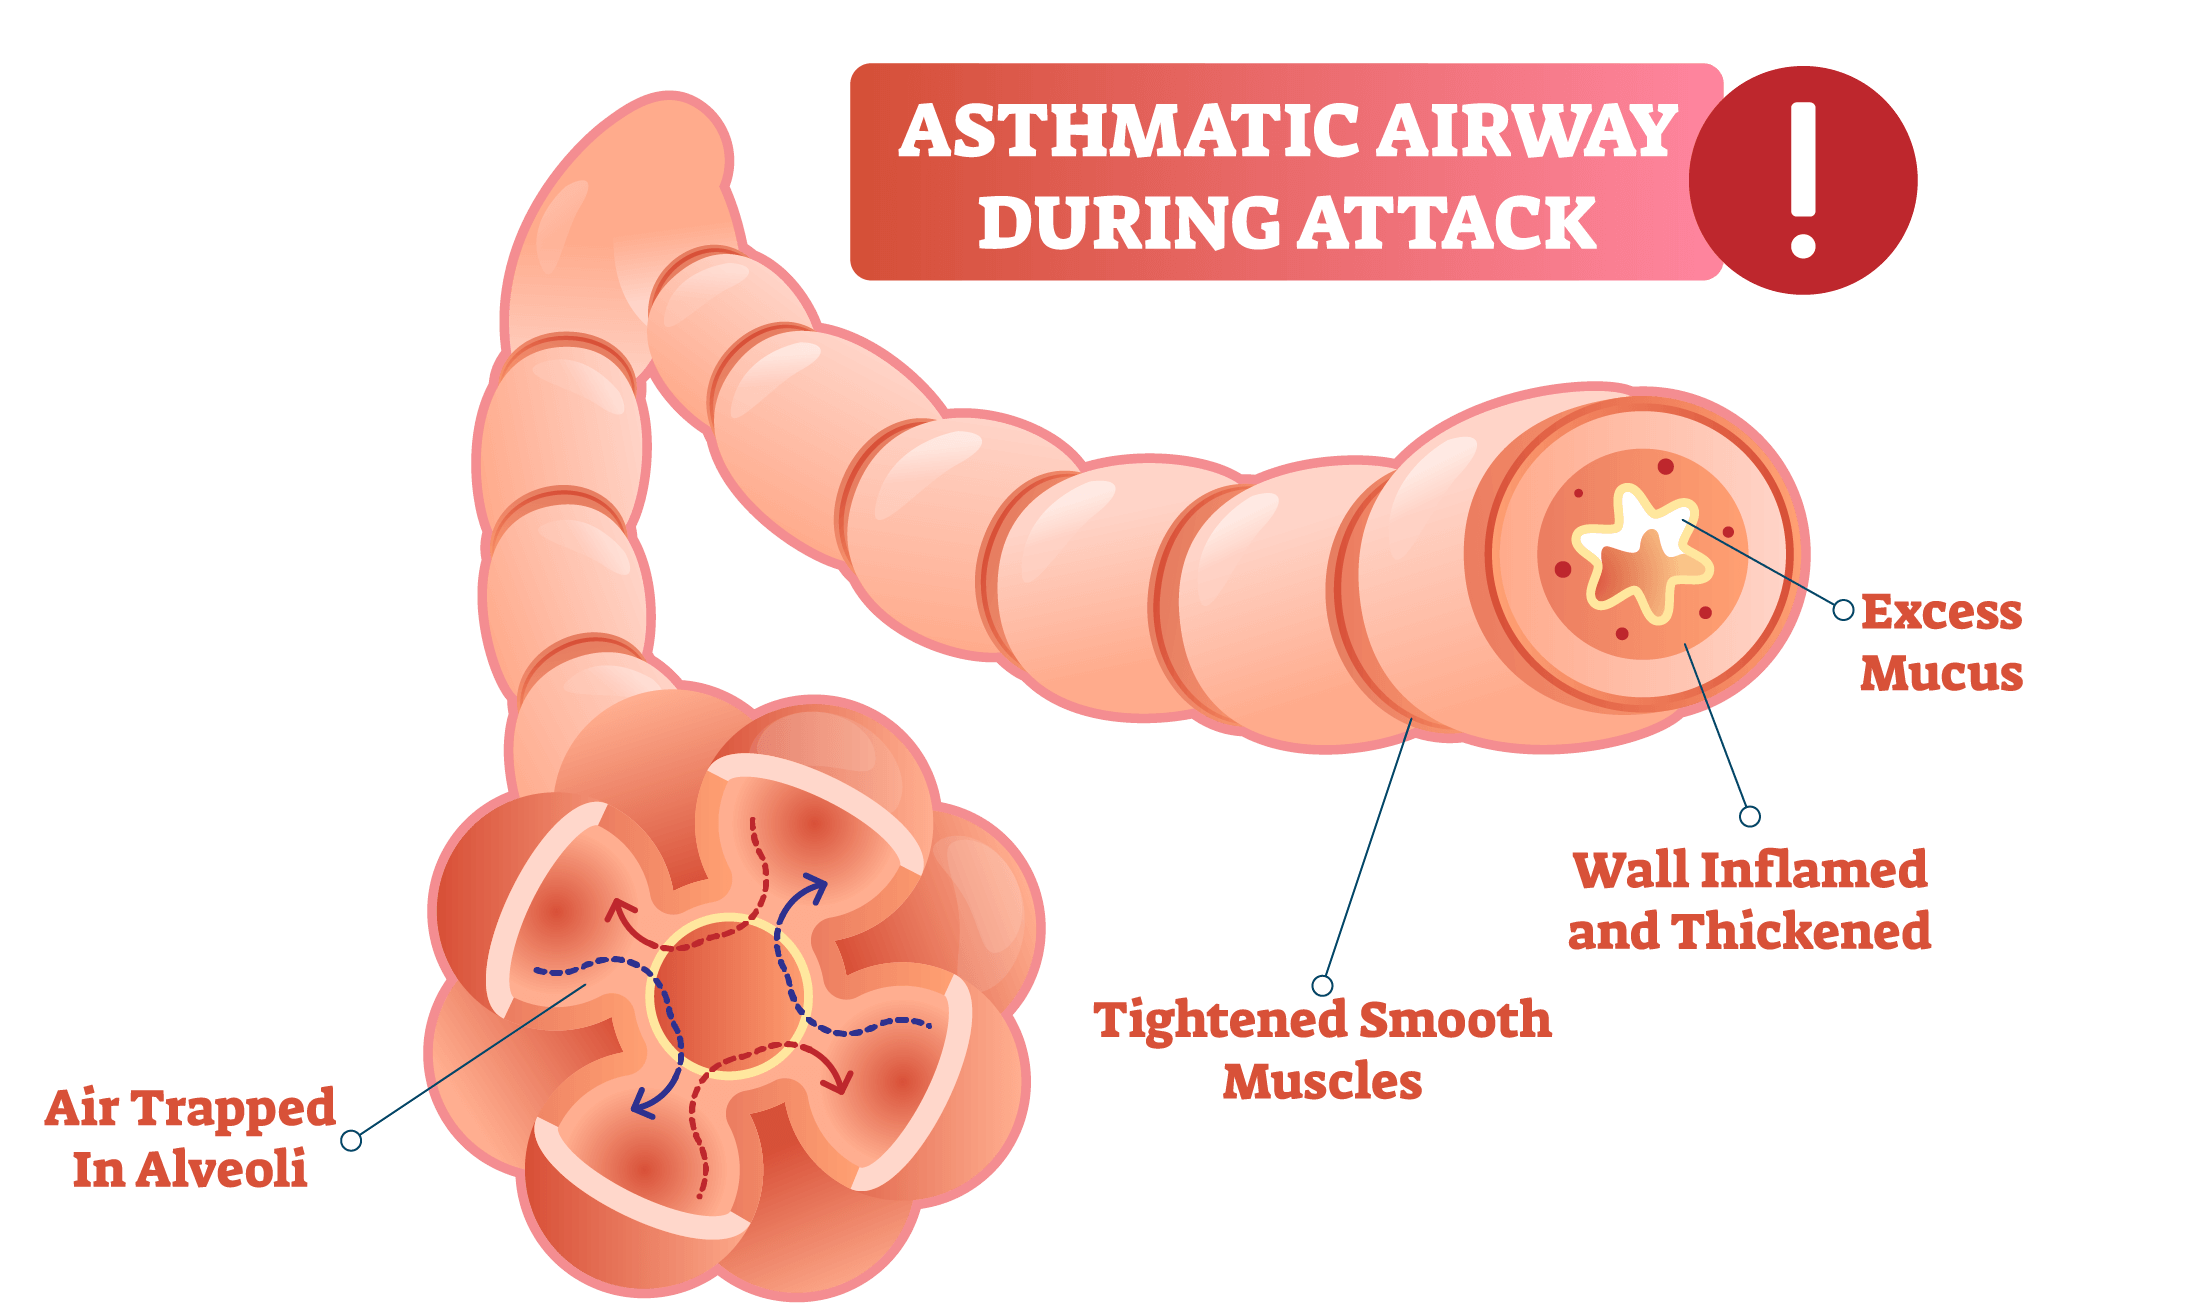 asthmatic airway during an attack